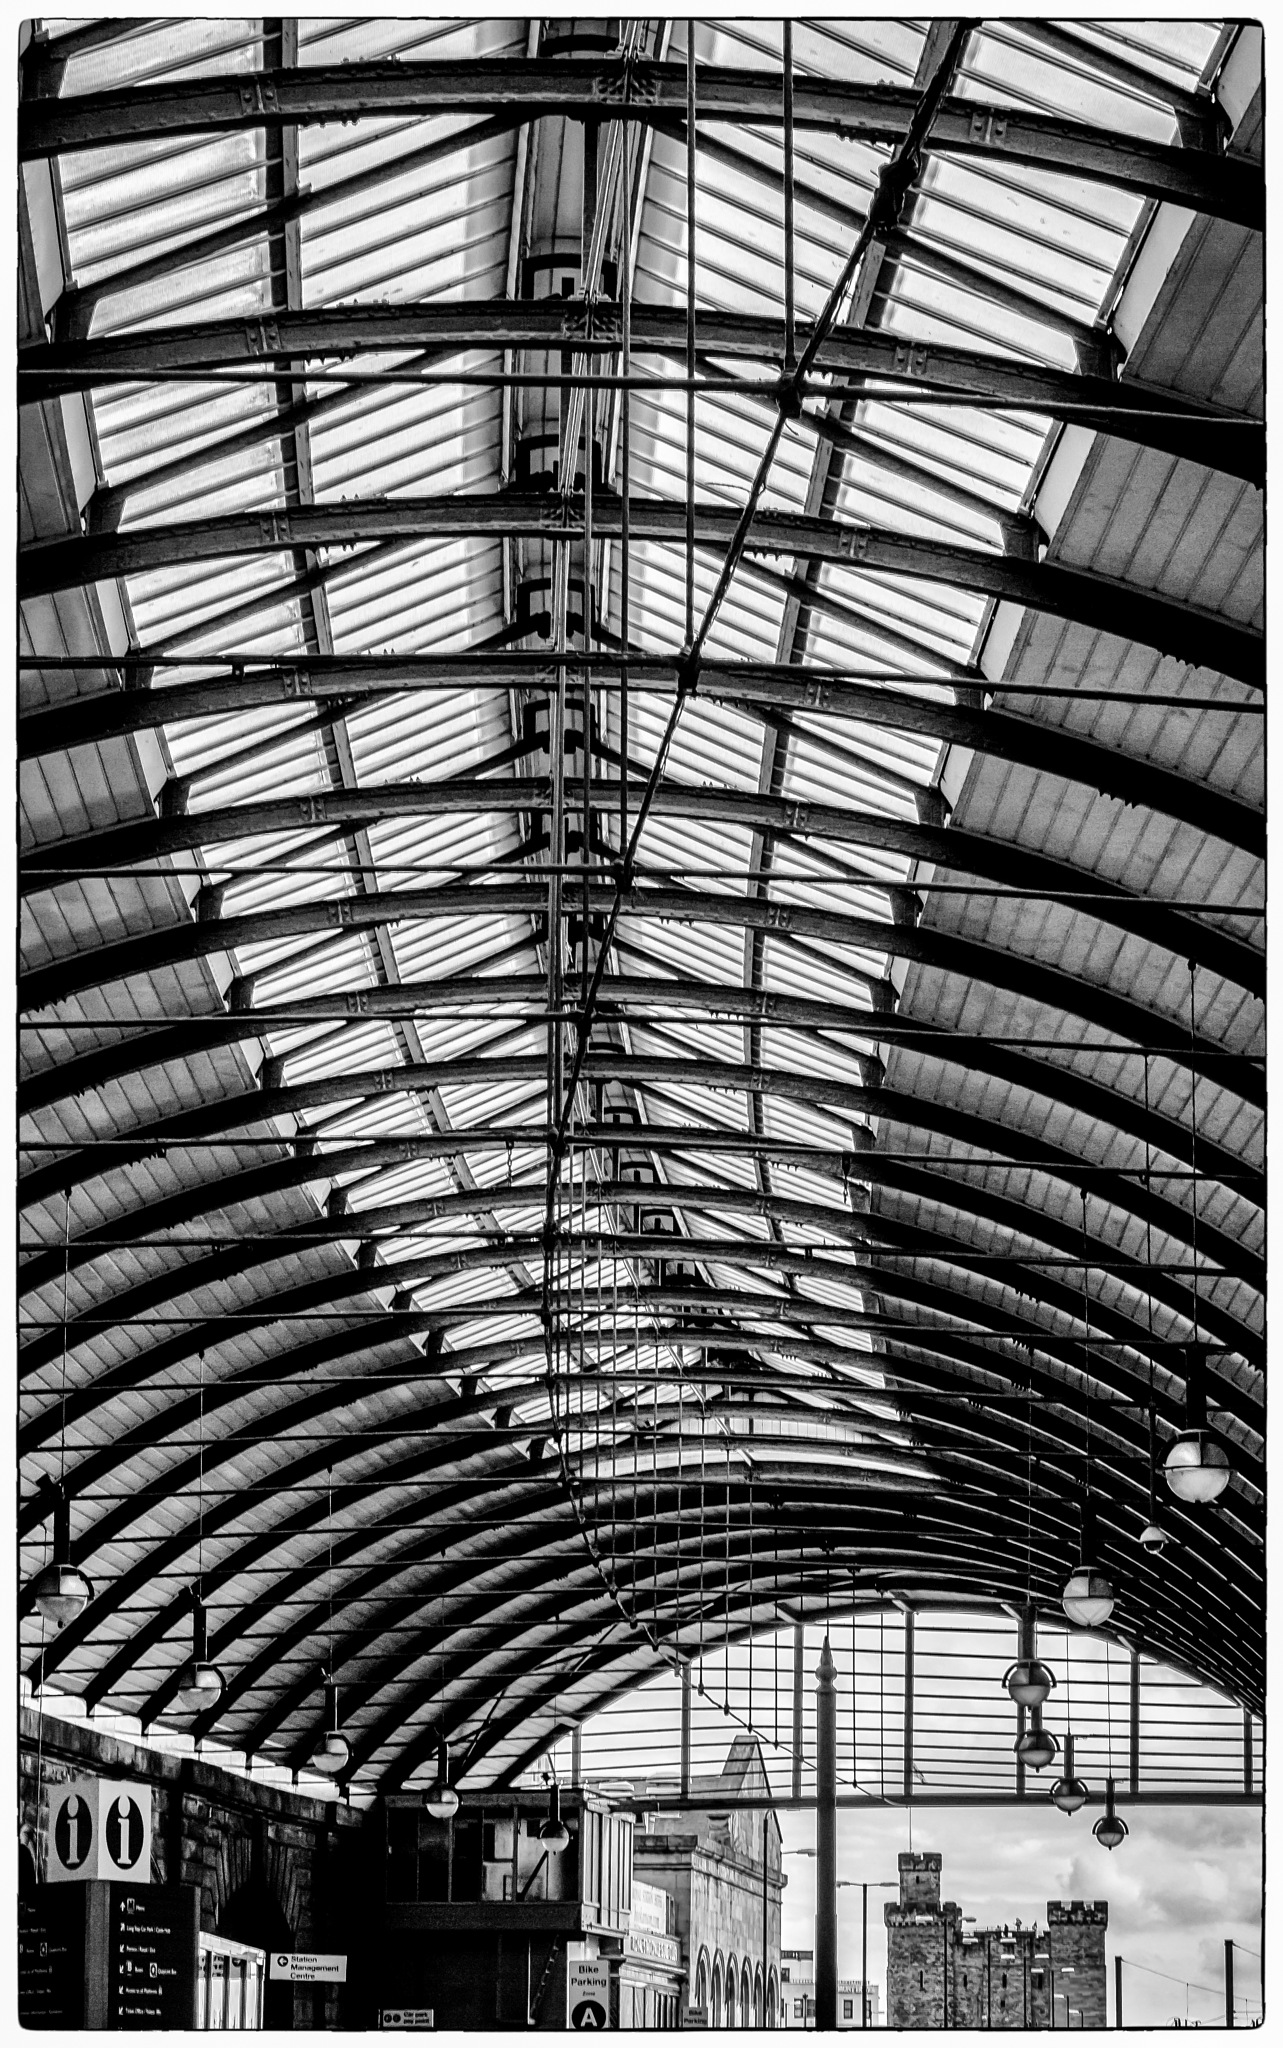 Central Station by Mole59